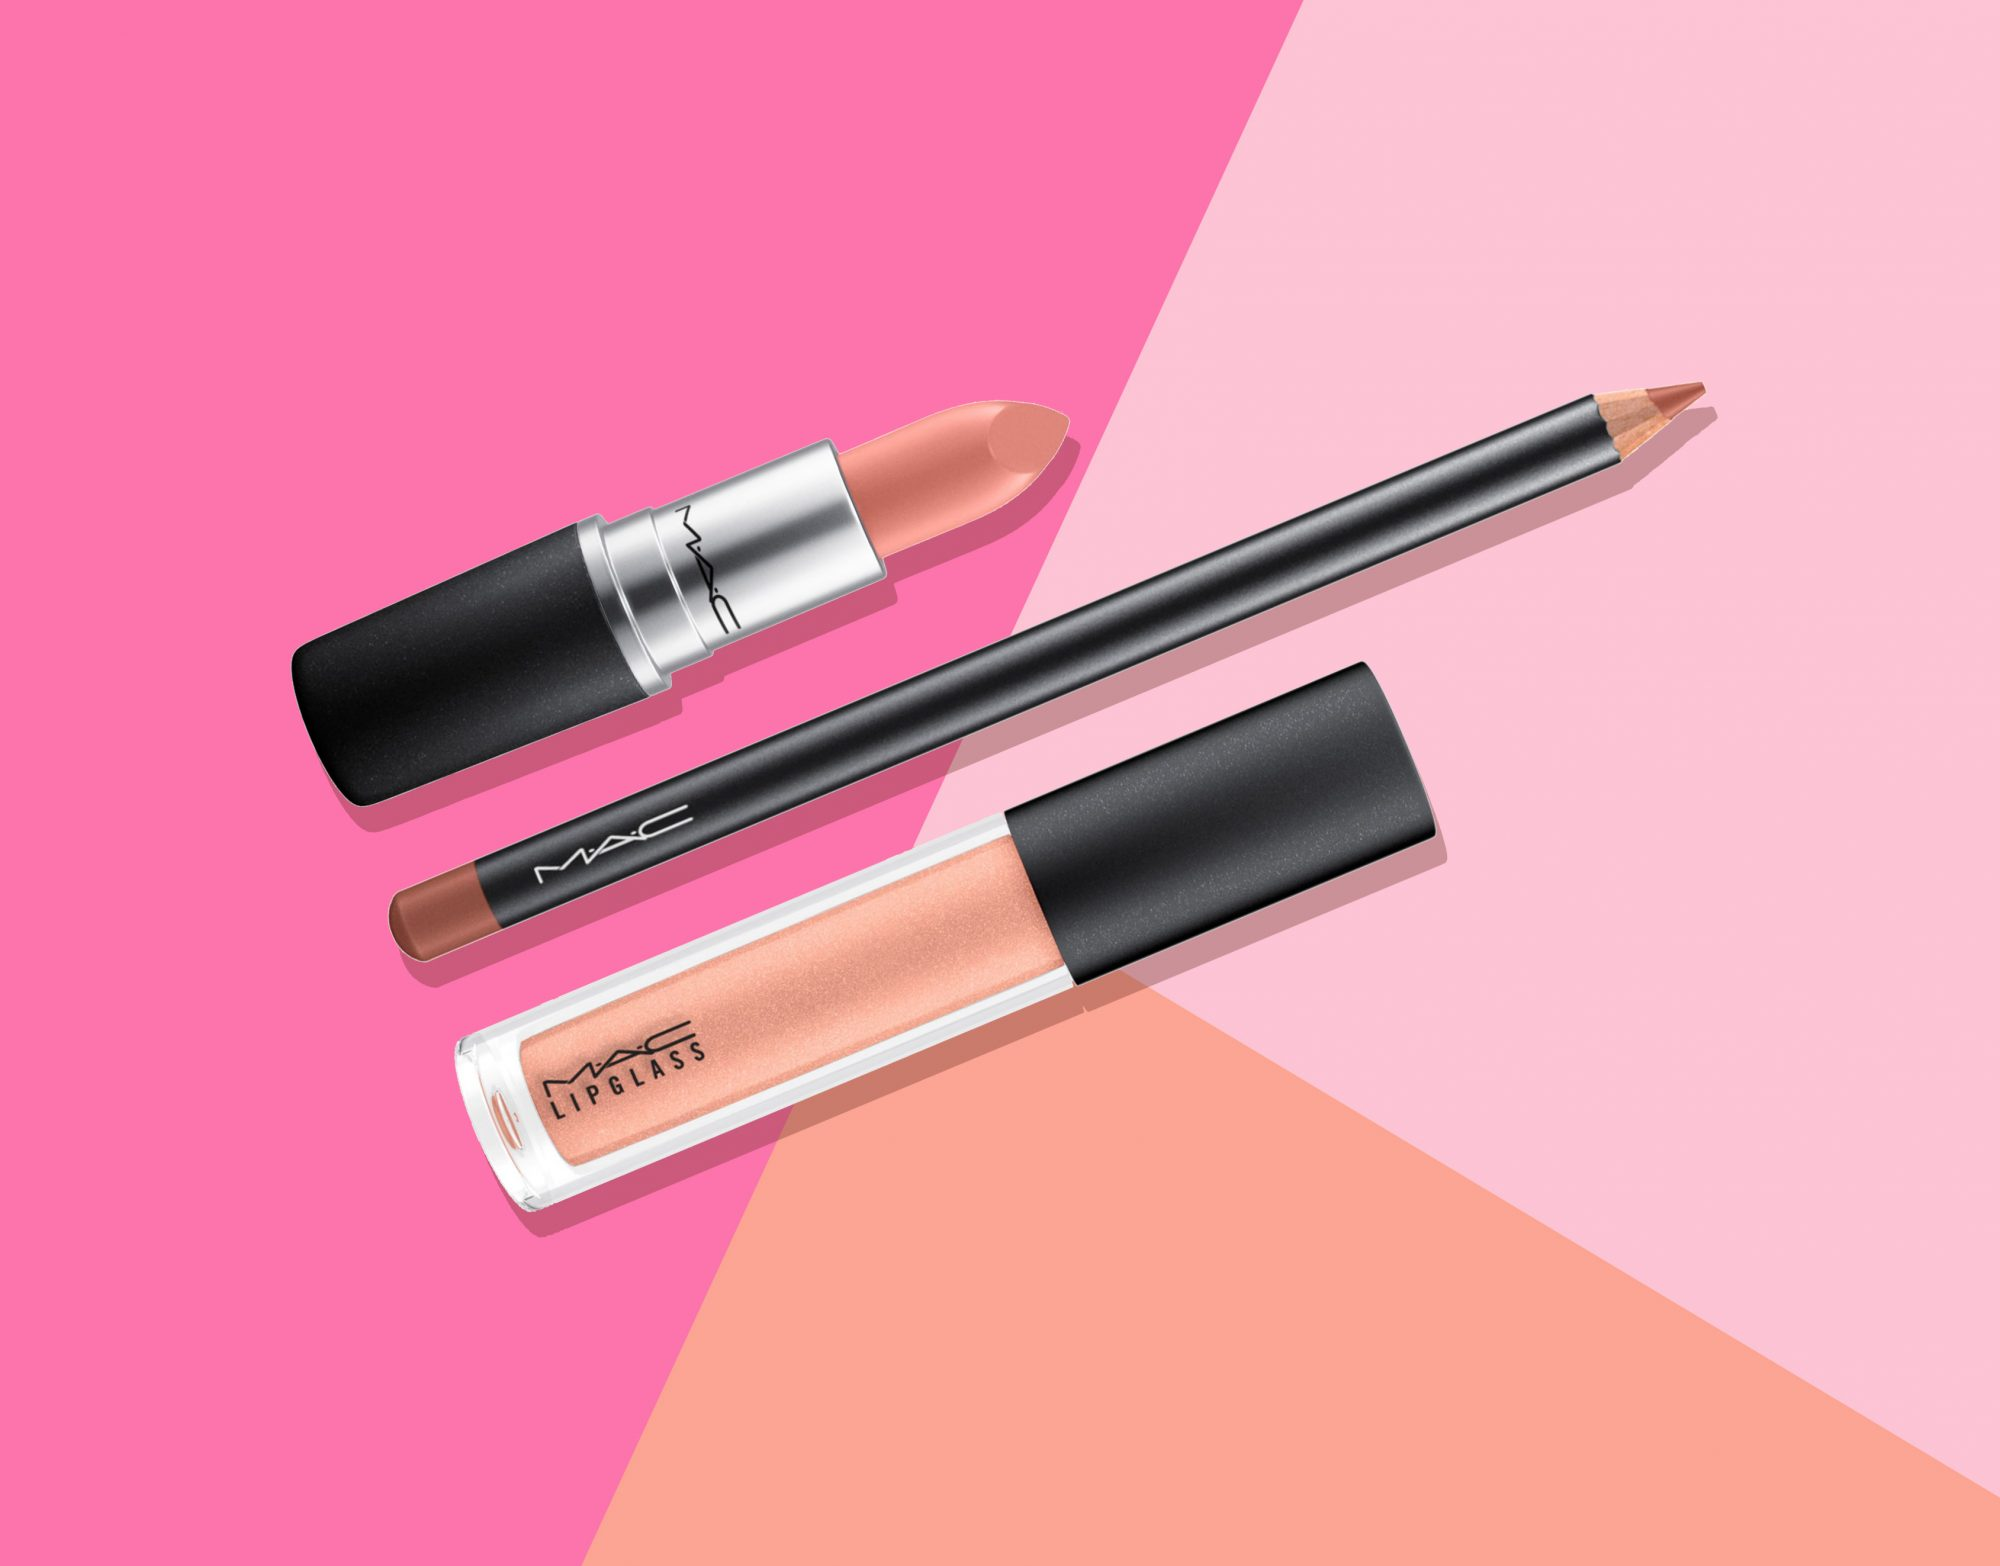 beauty set on sale at Nordstrom